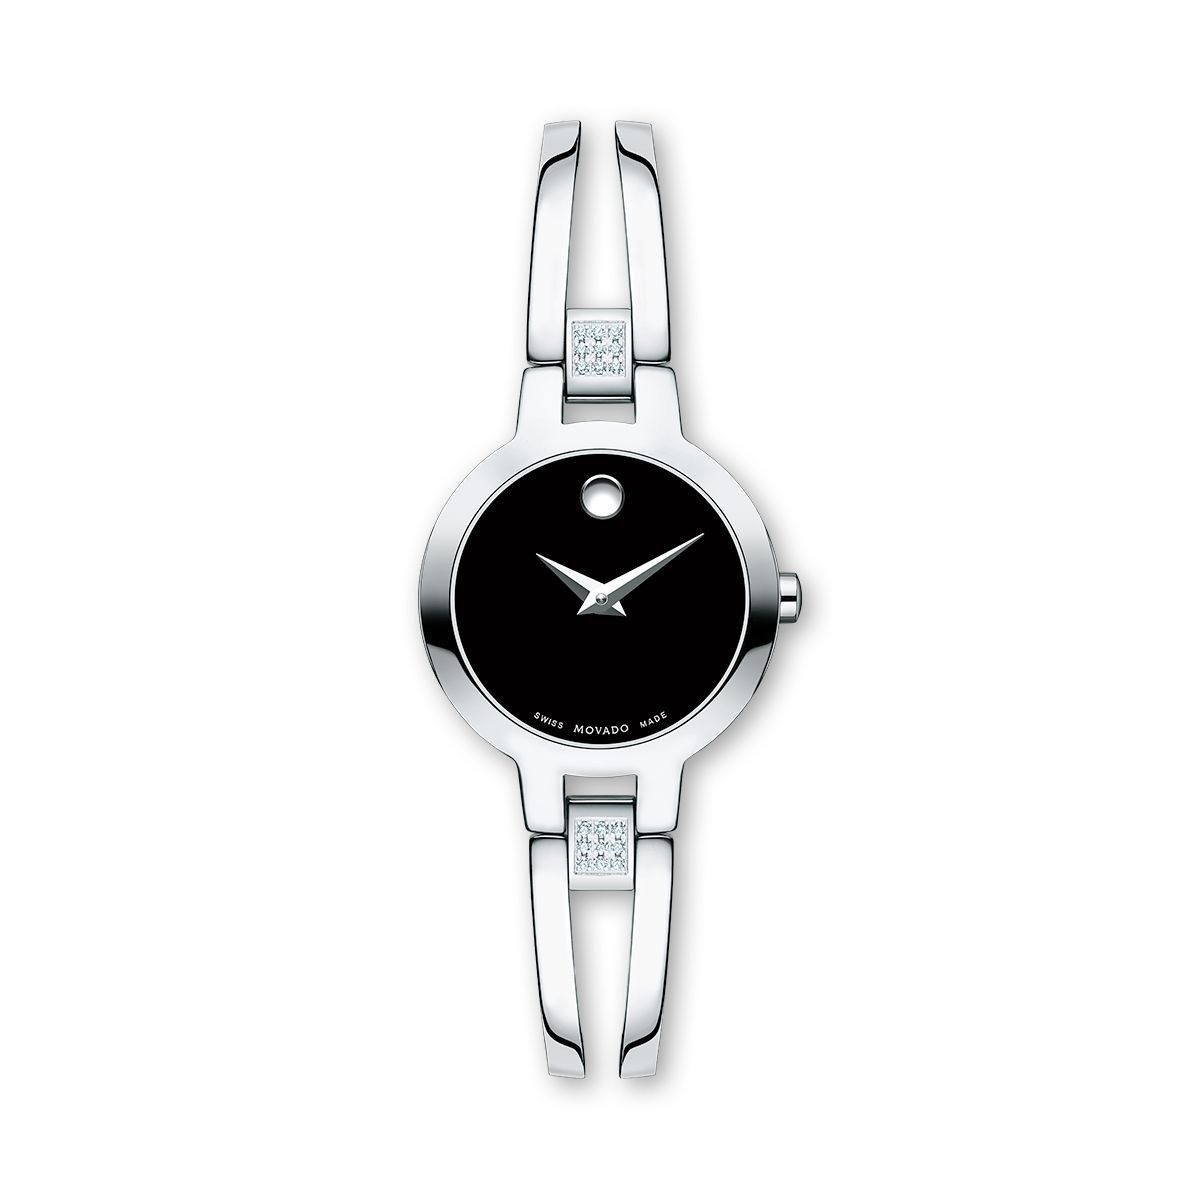 09b21d881ca3 Movado Watches - Macy s